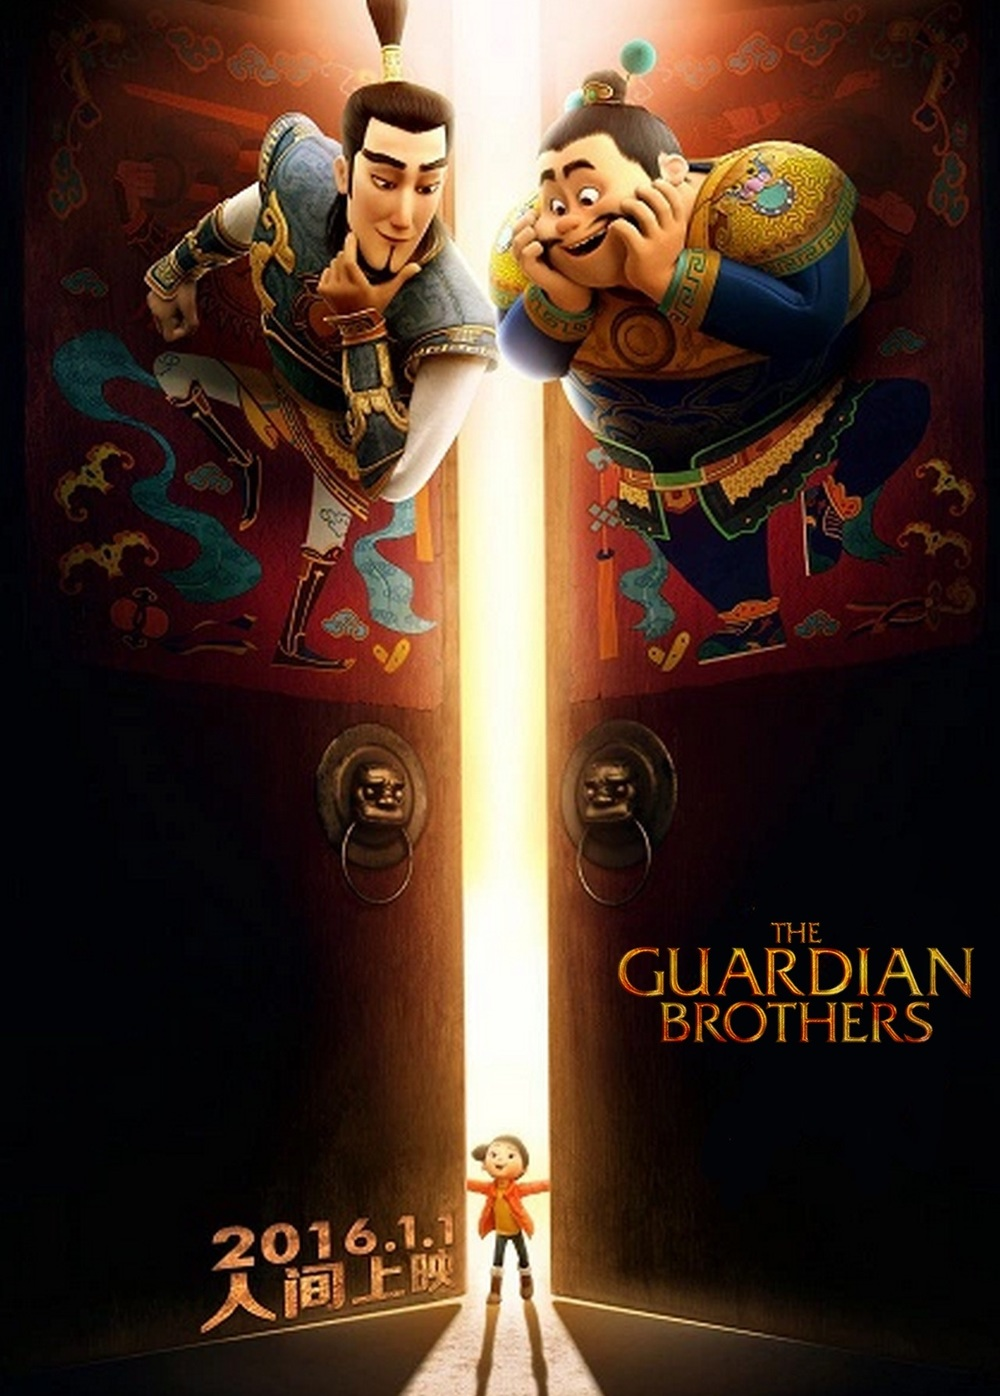 affiche du film The Guardian Brothers